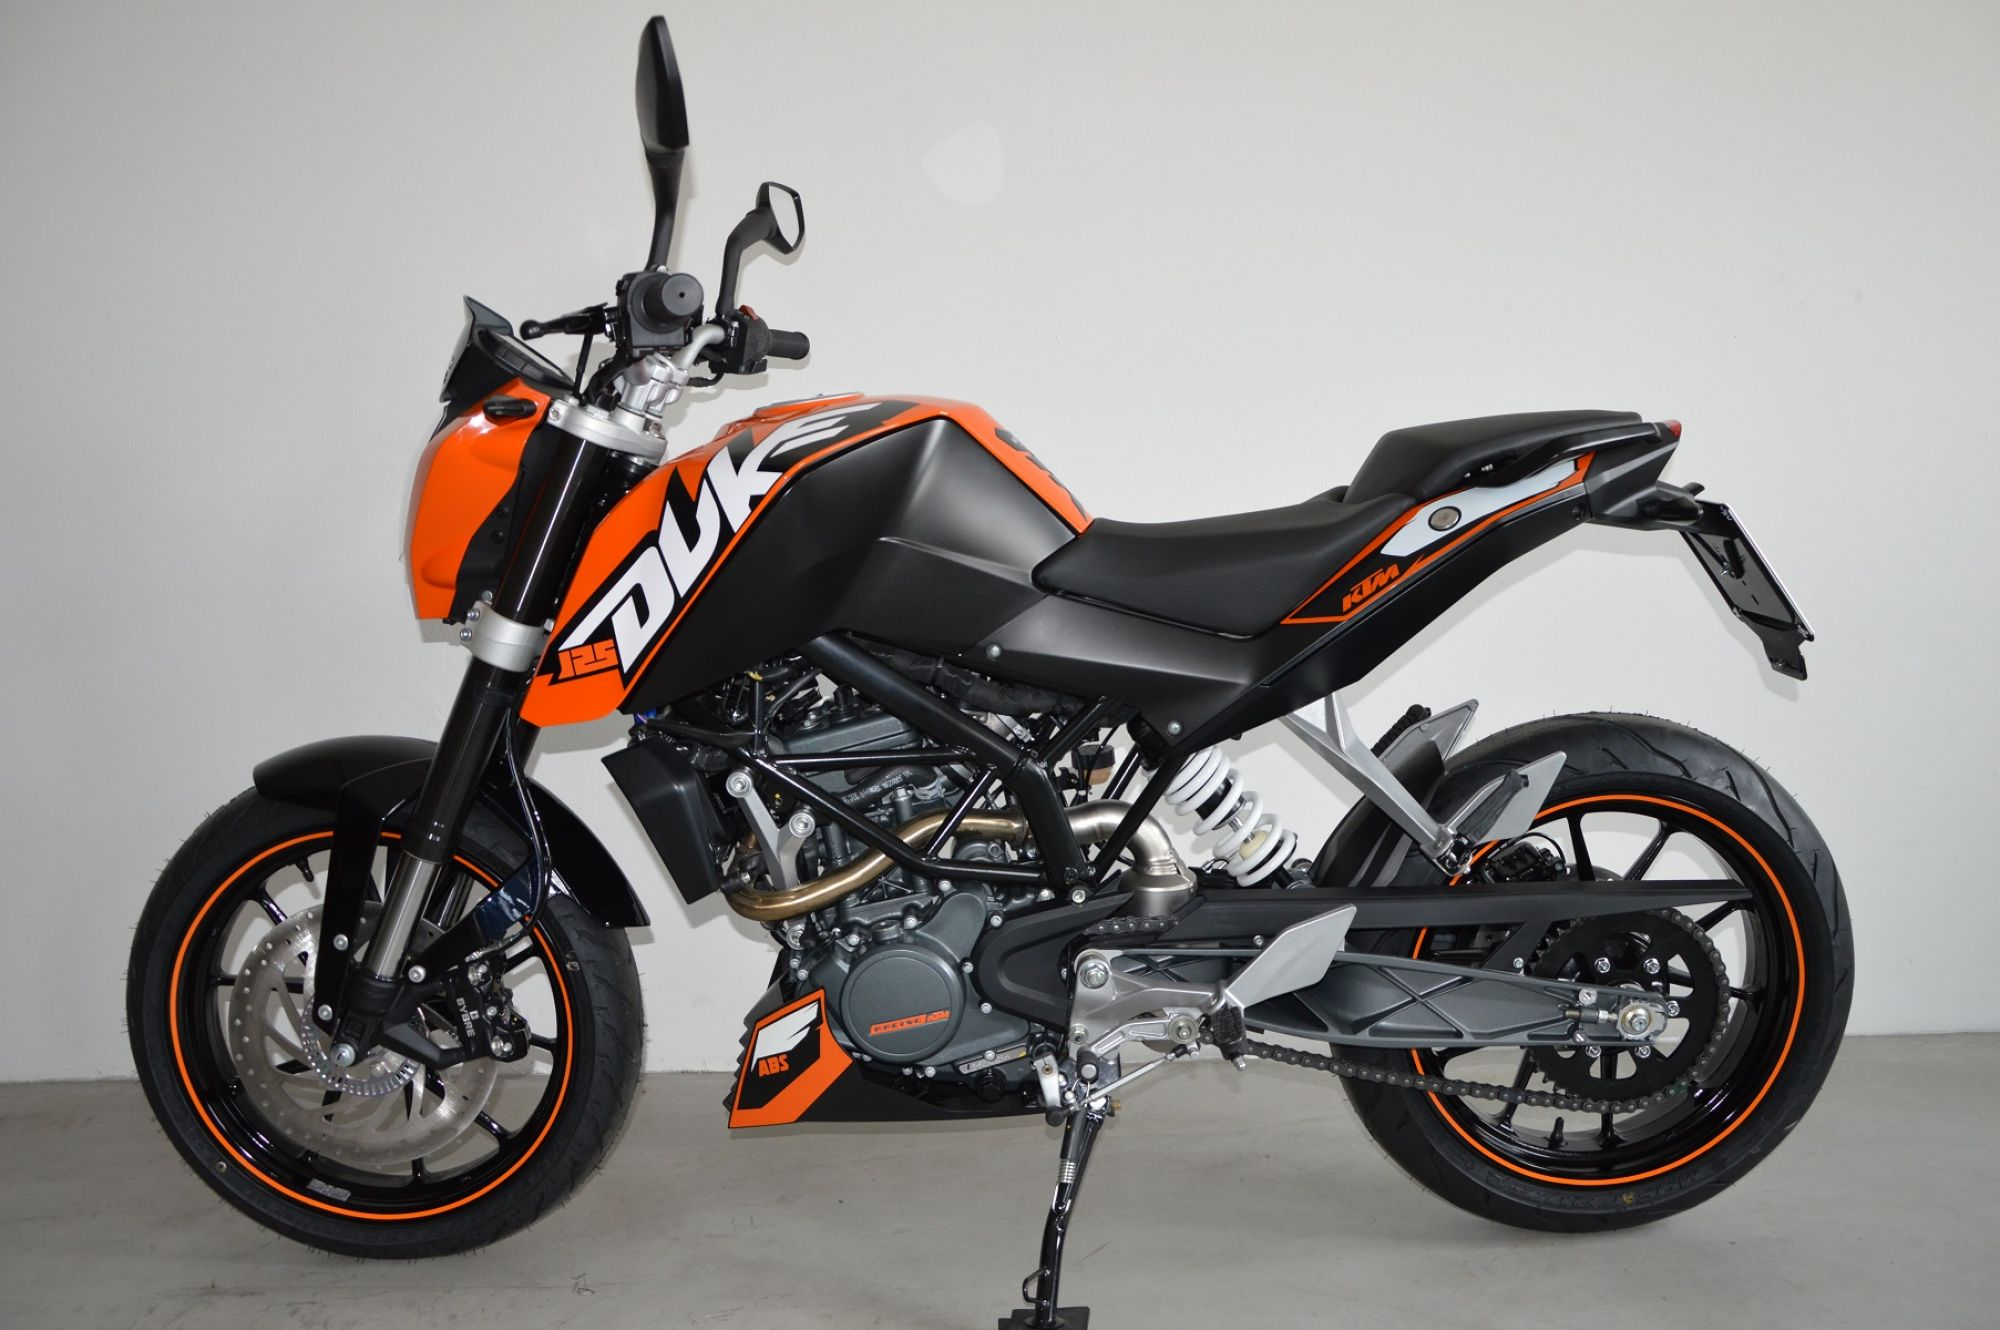 ktm 125 duke by motosport niedermayr noleggio moto bikes to rent kawasaki ktm. Black Bedroom Furniture Sets. Home Design Ideas